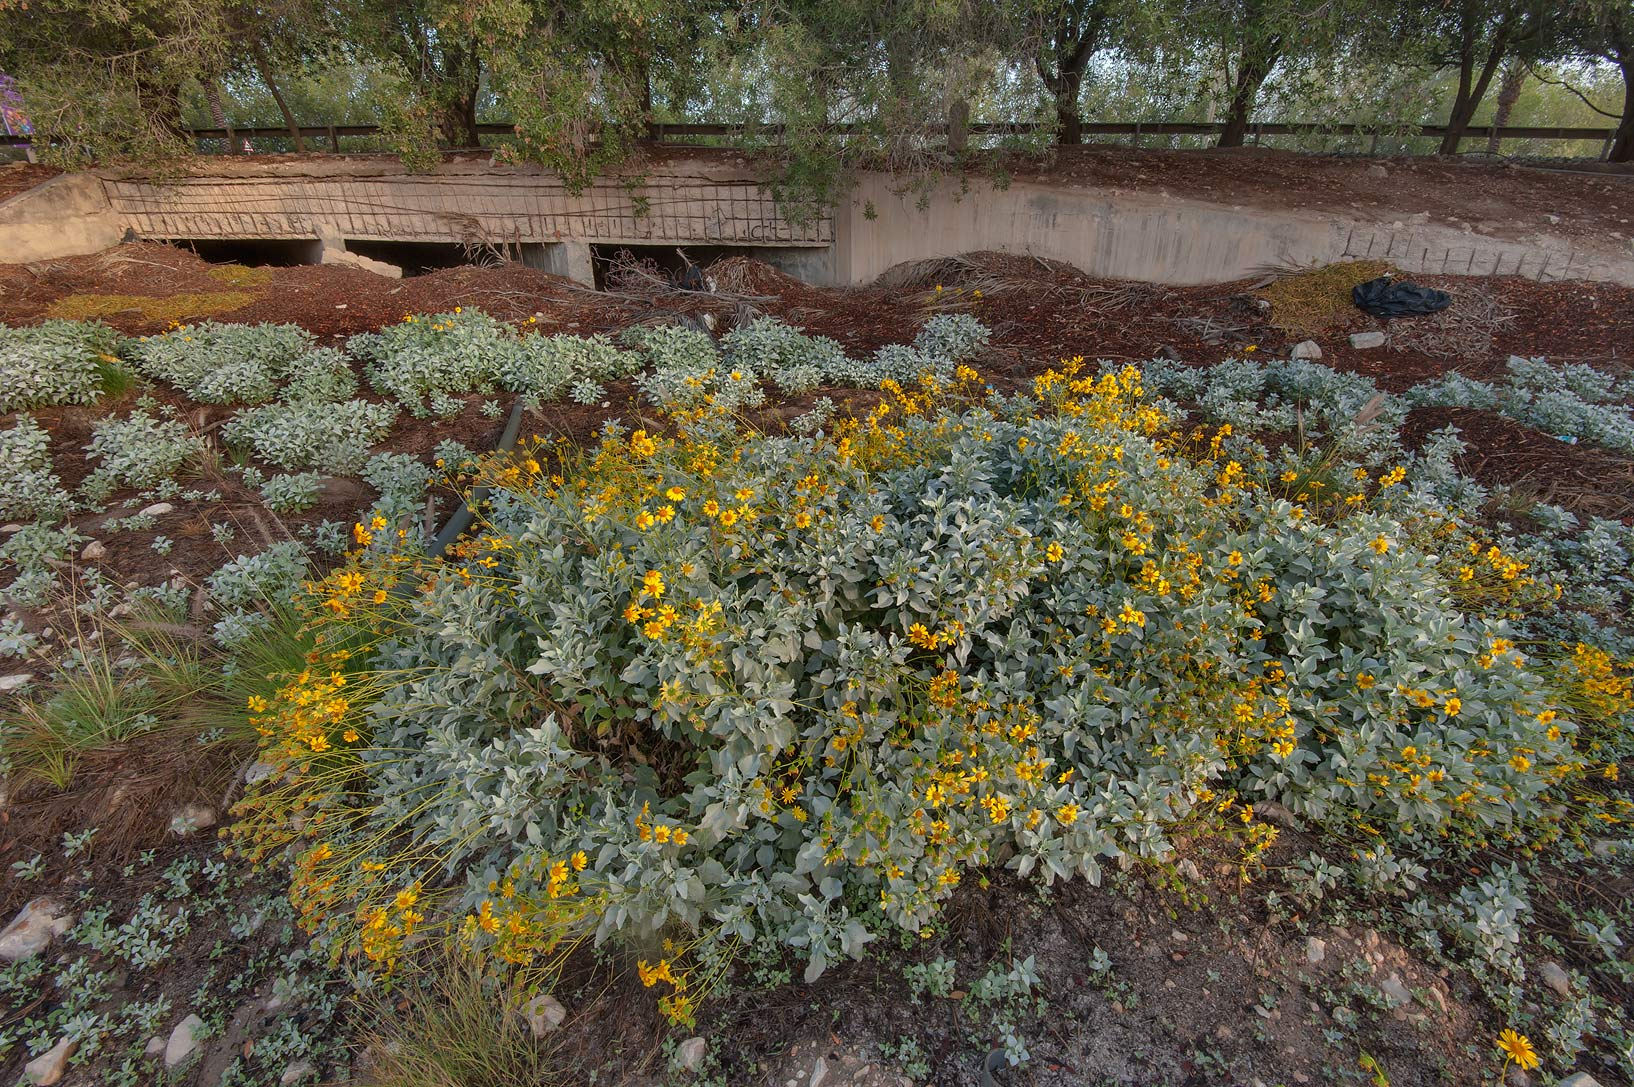 Blooming daisy bush (Brachyglottis greyi) in a park of Qatar University. Doha, Qatar